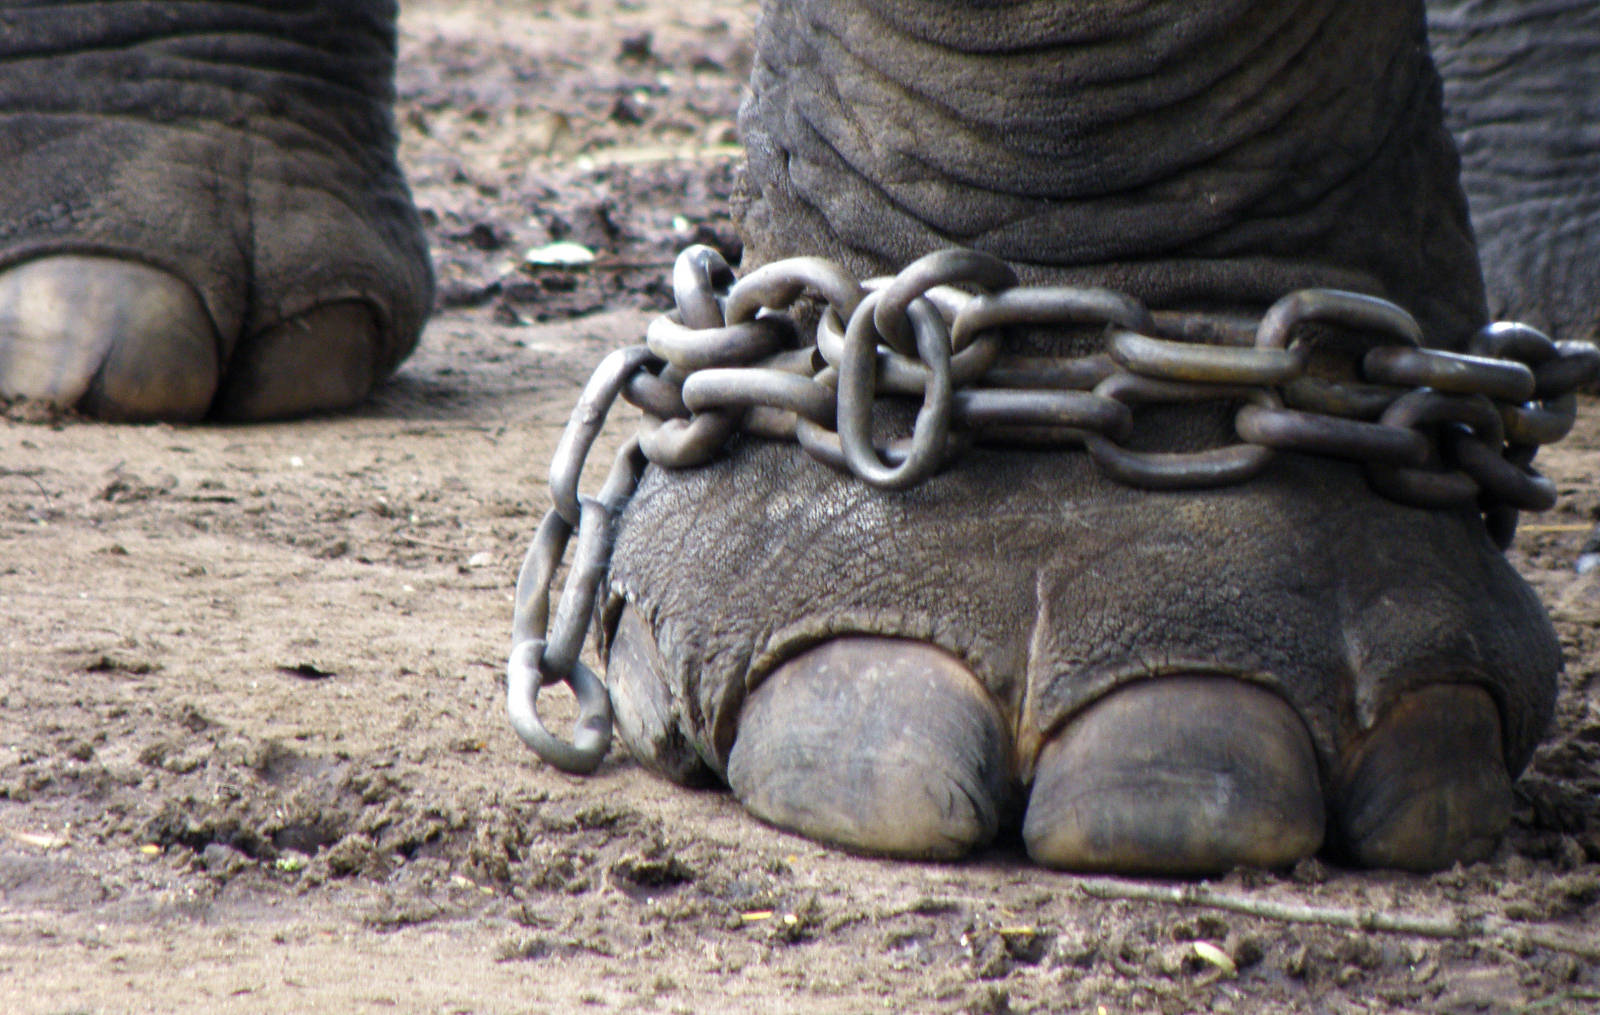 5-Reasons-Why-Animal-Circuses-in-the-U.S.-Need-to-be-Banned-NOW.jpg